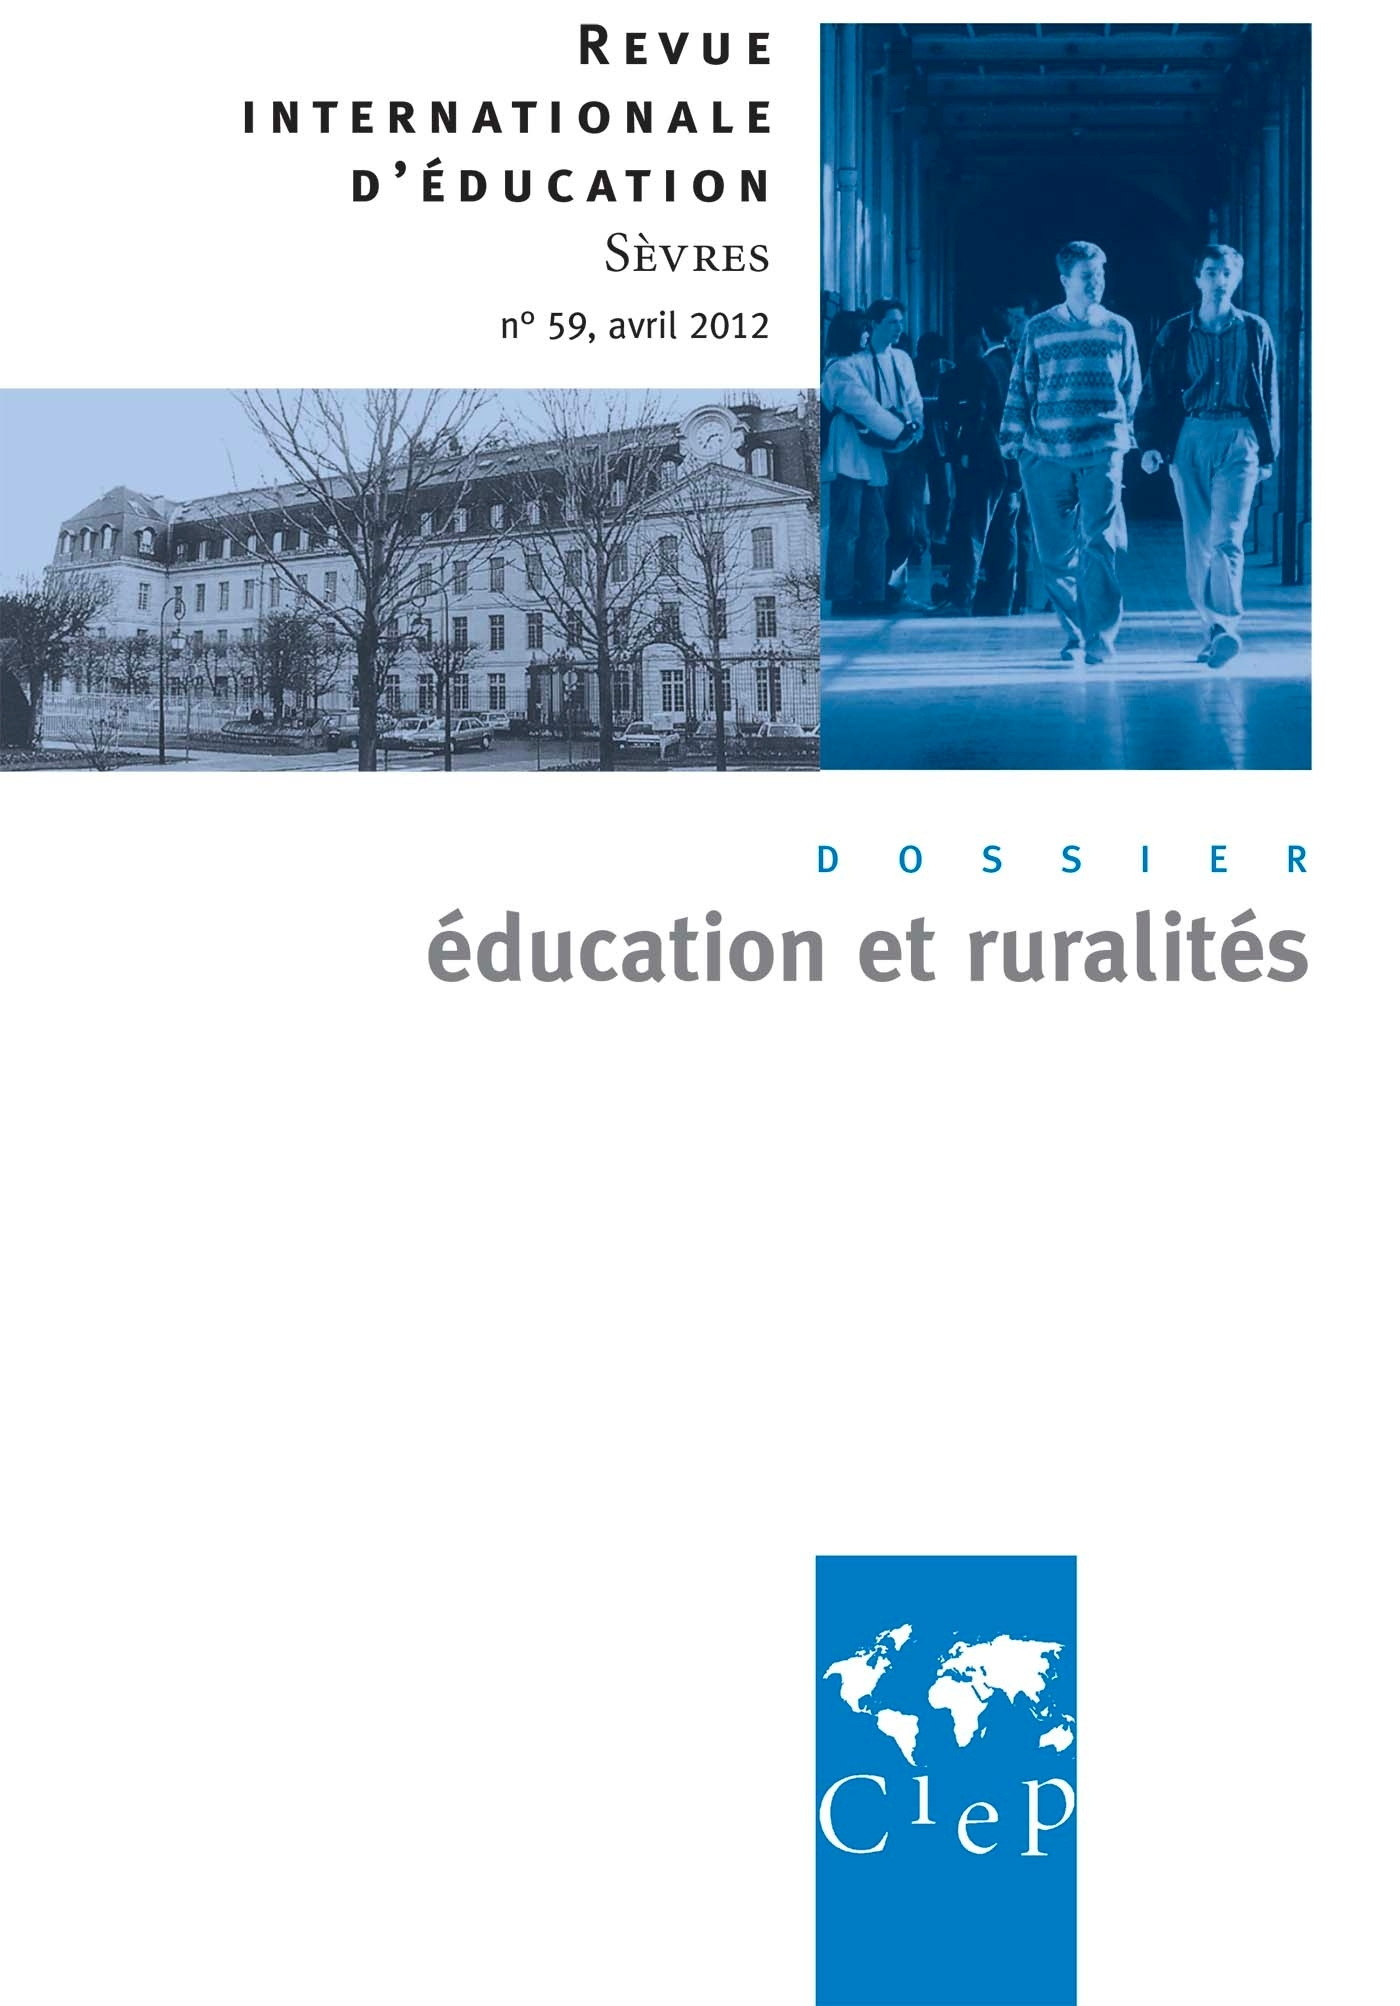 EDUCATION ET RURALITE  - REVUE INTERNATIONALE D'EDUCATION SEVRES 59